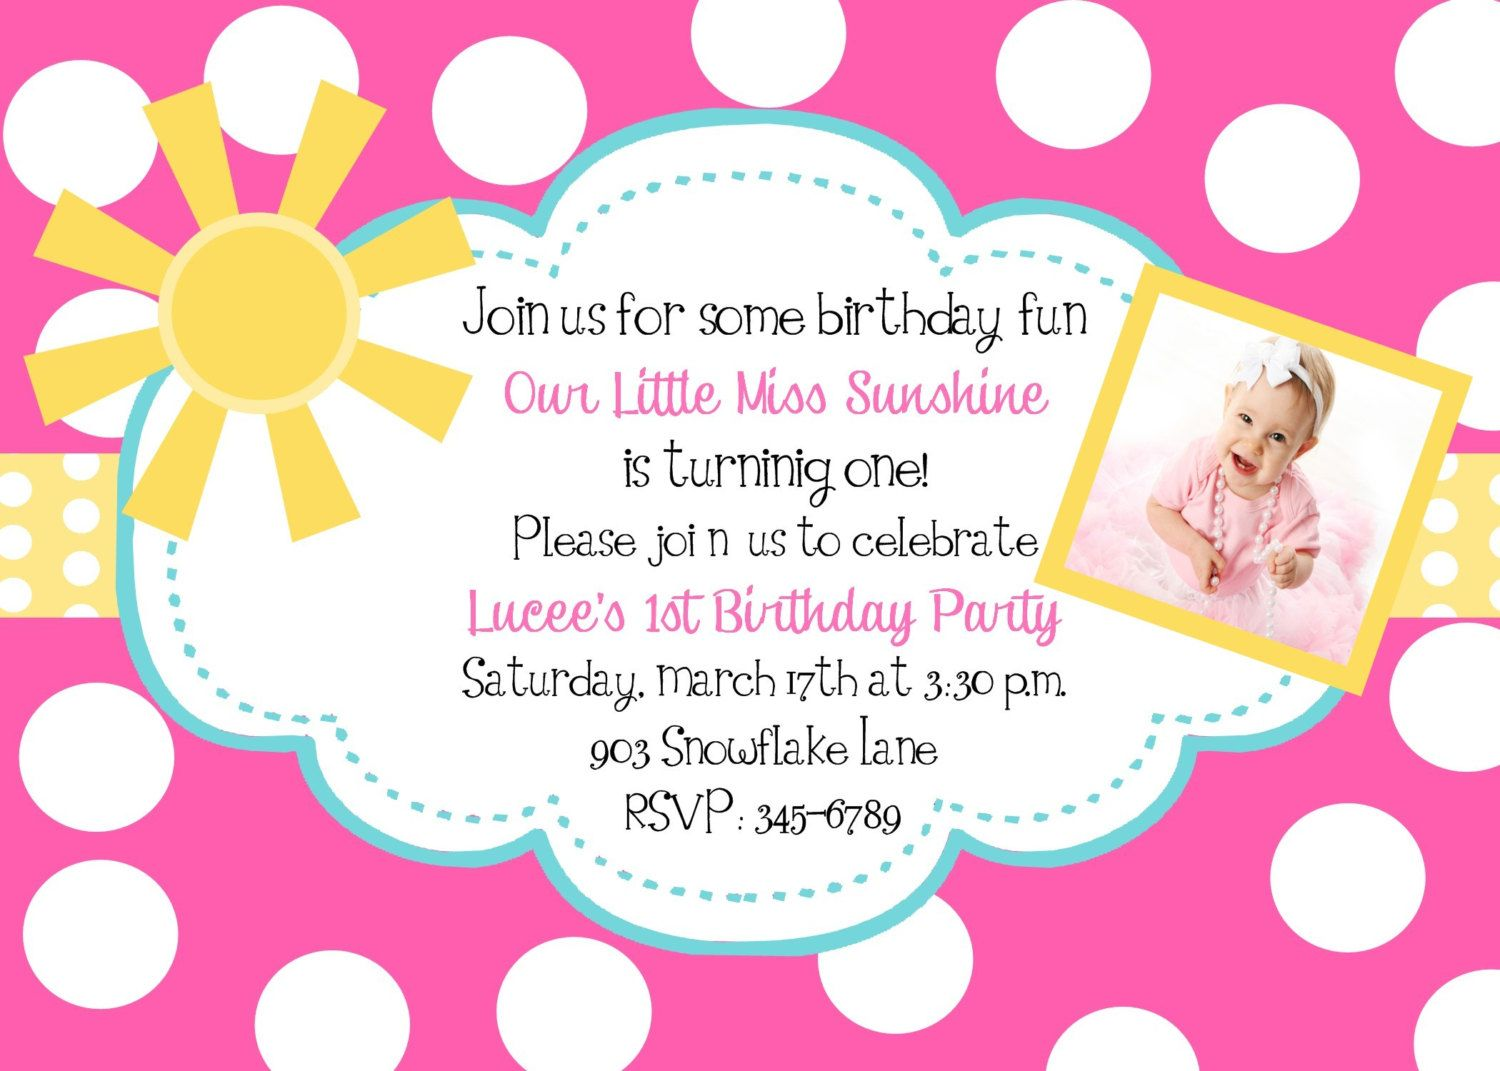 Sunshine Birthday Party invitations printable or by noteablechic, $9.50